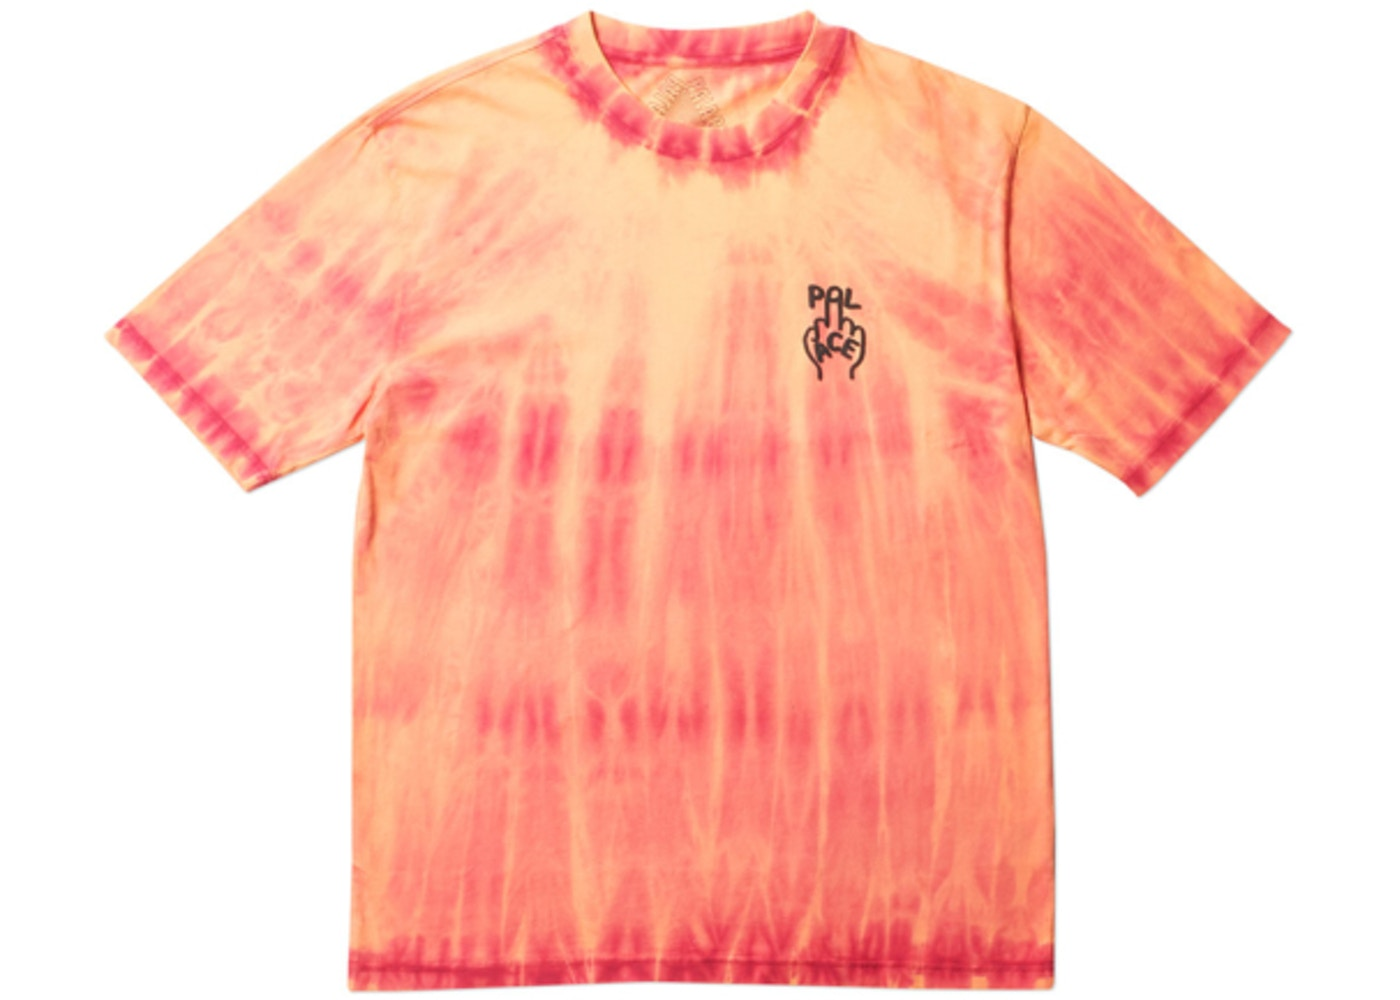 8f64bedb Palace Finger Up T-Shirt Orange Tie Dye - FW18